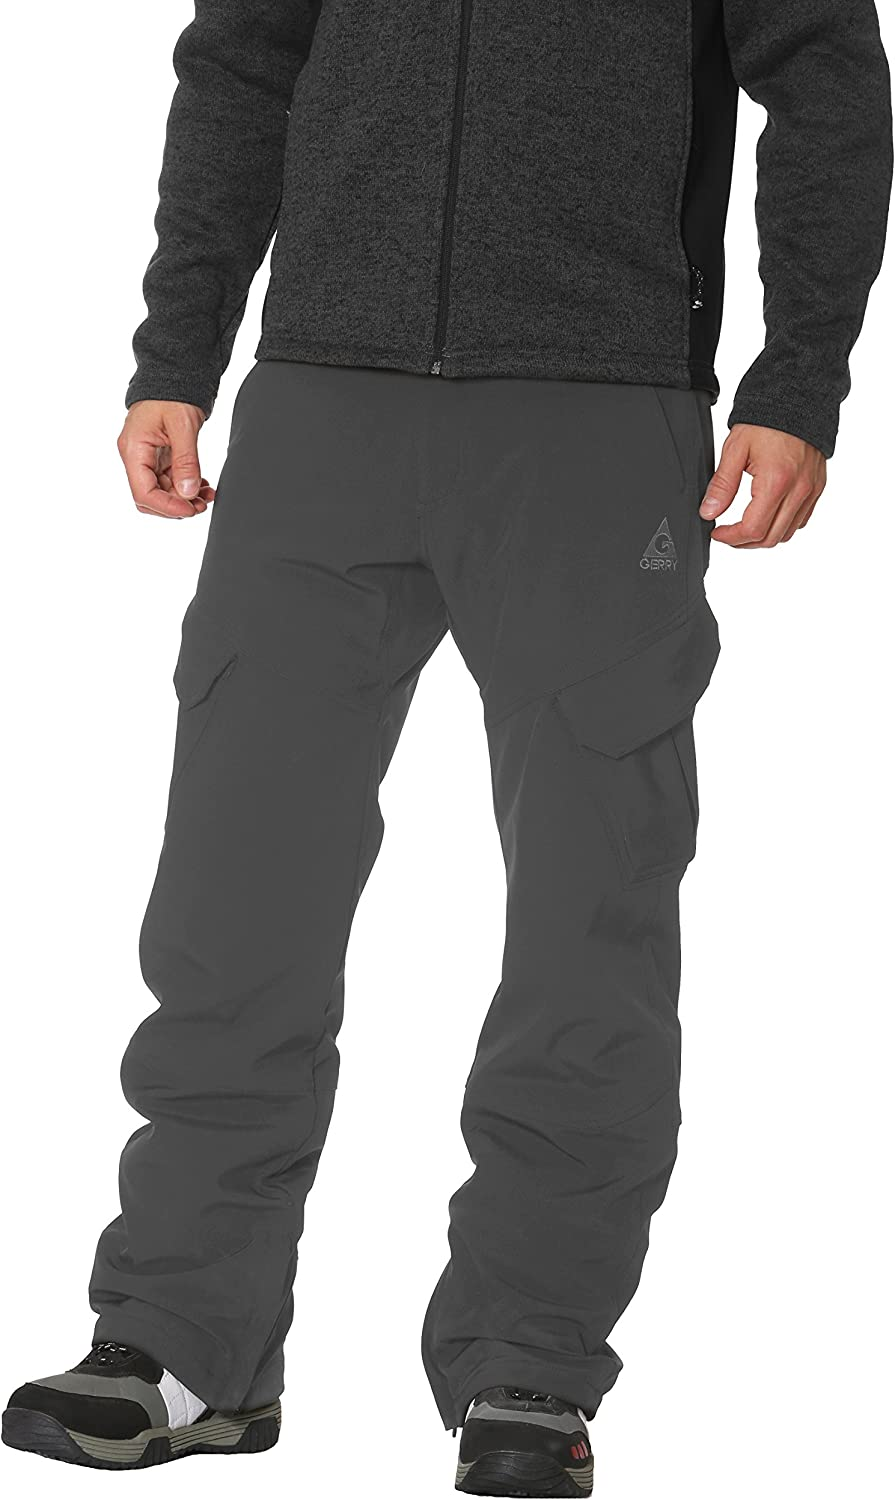 Gerry Men's Snow Pants Tech New Free Large discharge sale Shipping